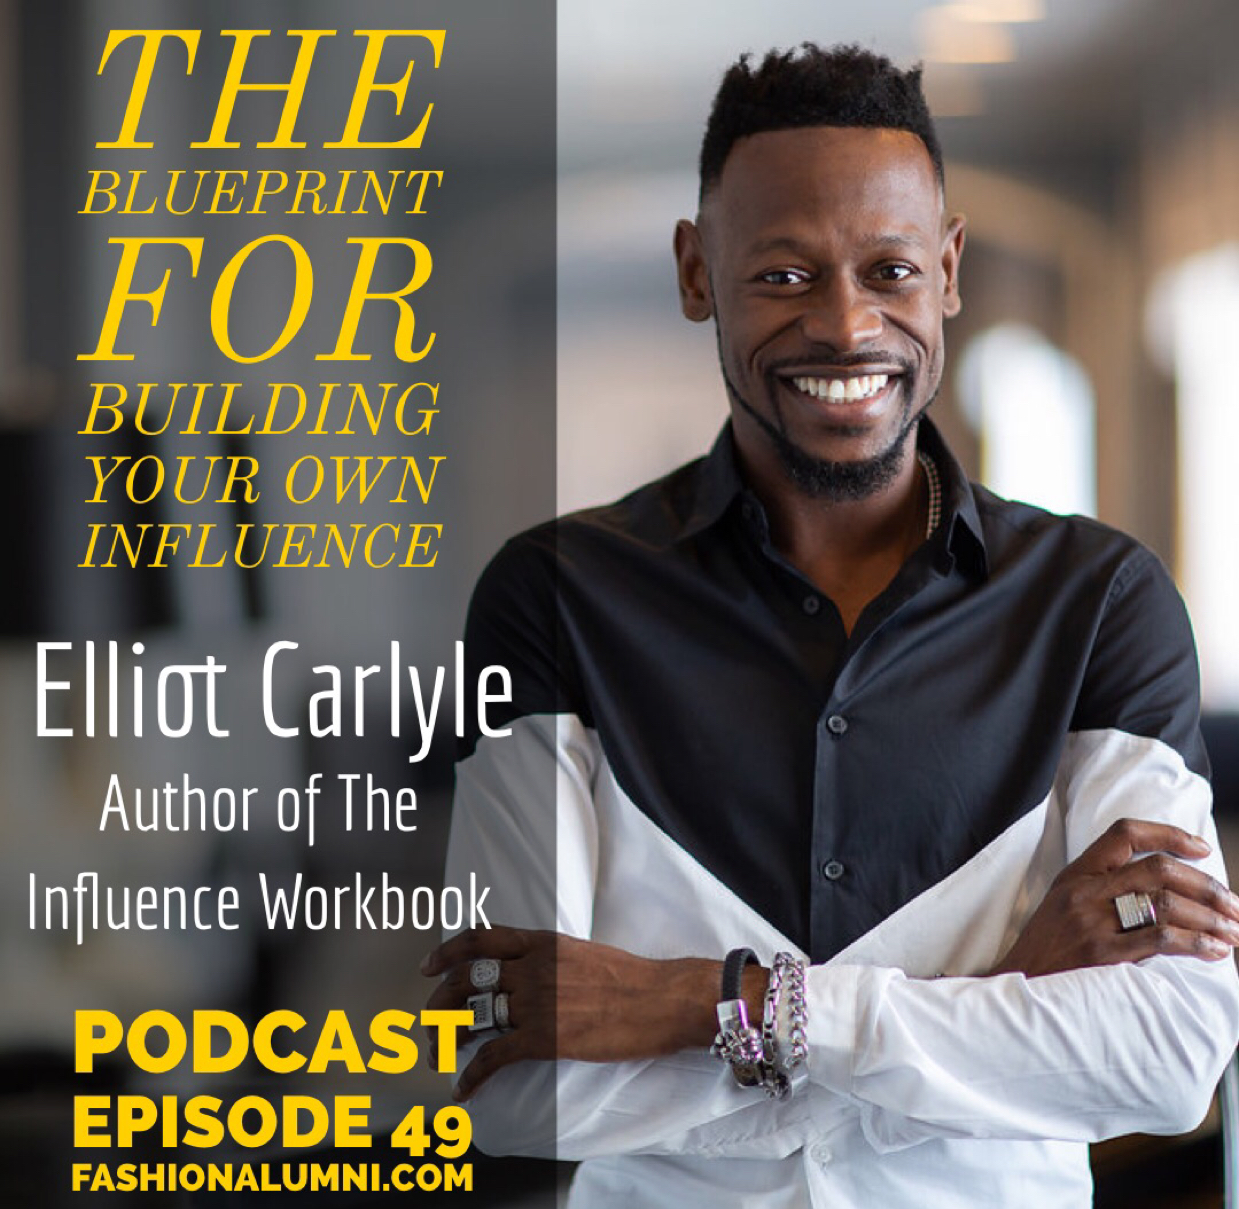 Elliot Carlyle shares on the Fashion Alumni Podcast